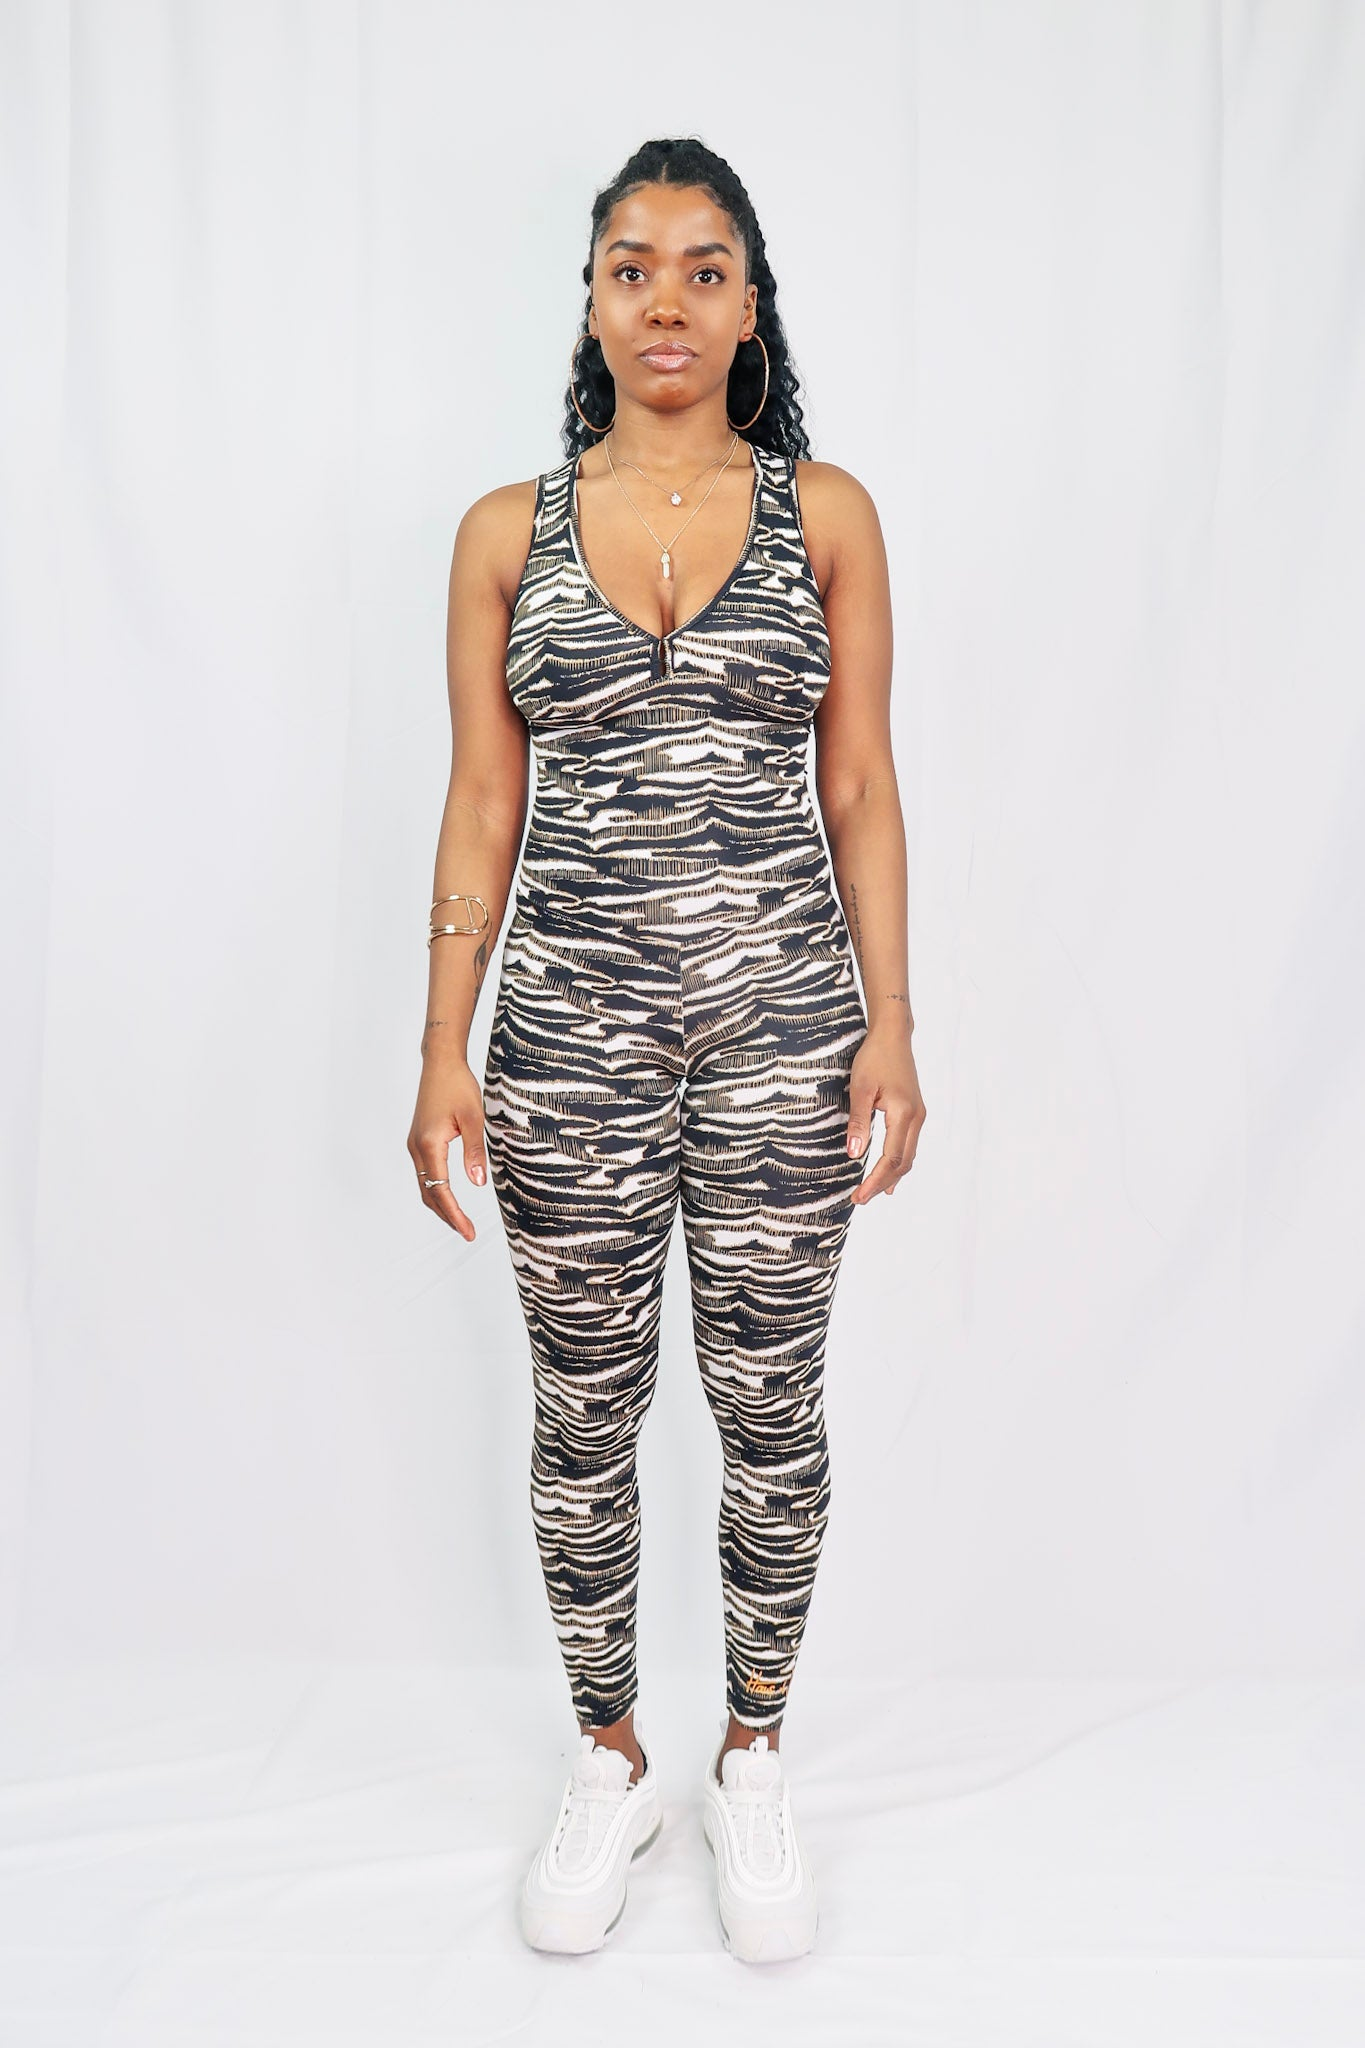 Crossroads Jumpsuit - Snow Tiger - Haus of Juicy Activewear - for Gym Lounge Home Workout Dance Fitness